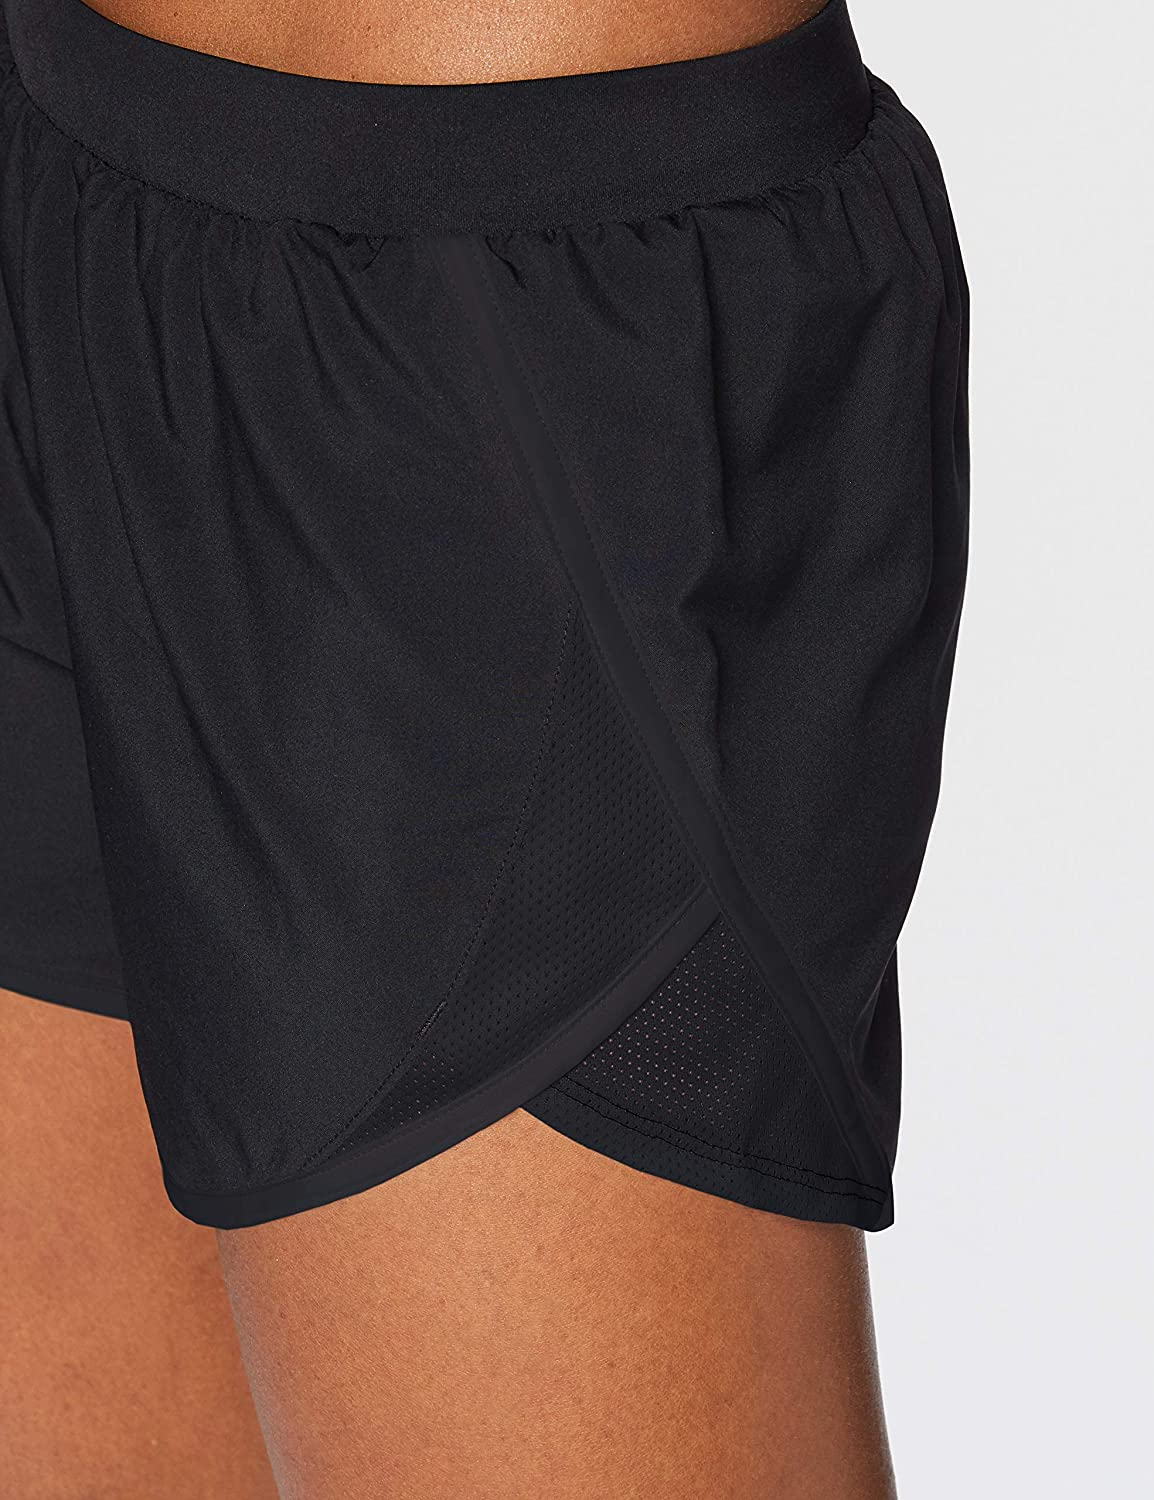 Under Armour Women's Fly By 2.0 Running Shorts : Clothing